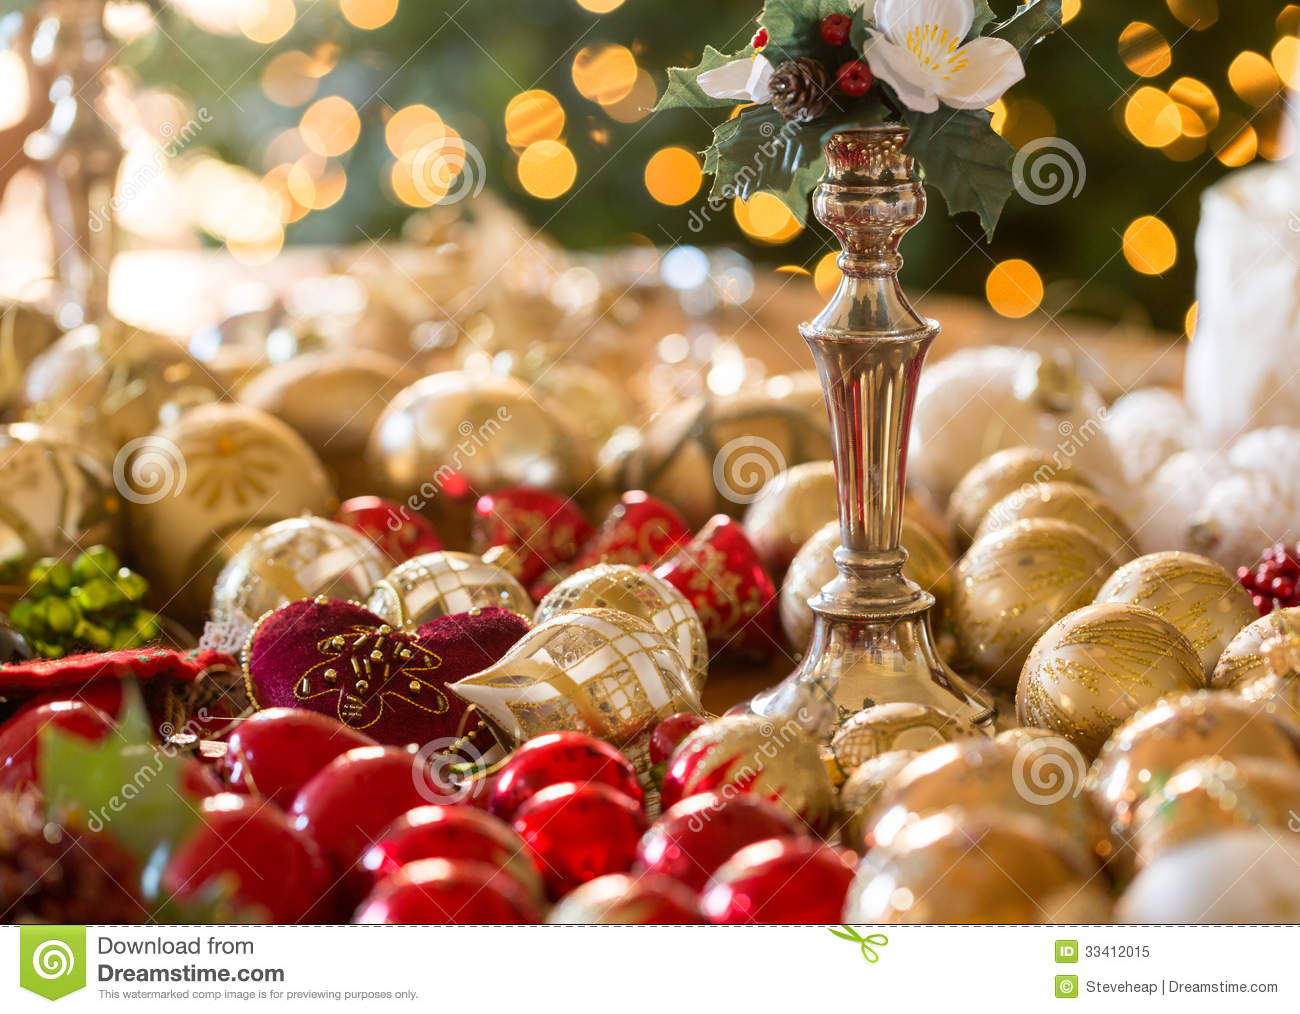 Christmas Decorations On Table Stock Image Image 33412015